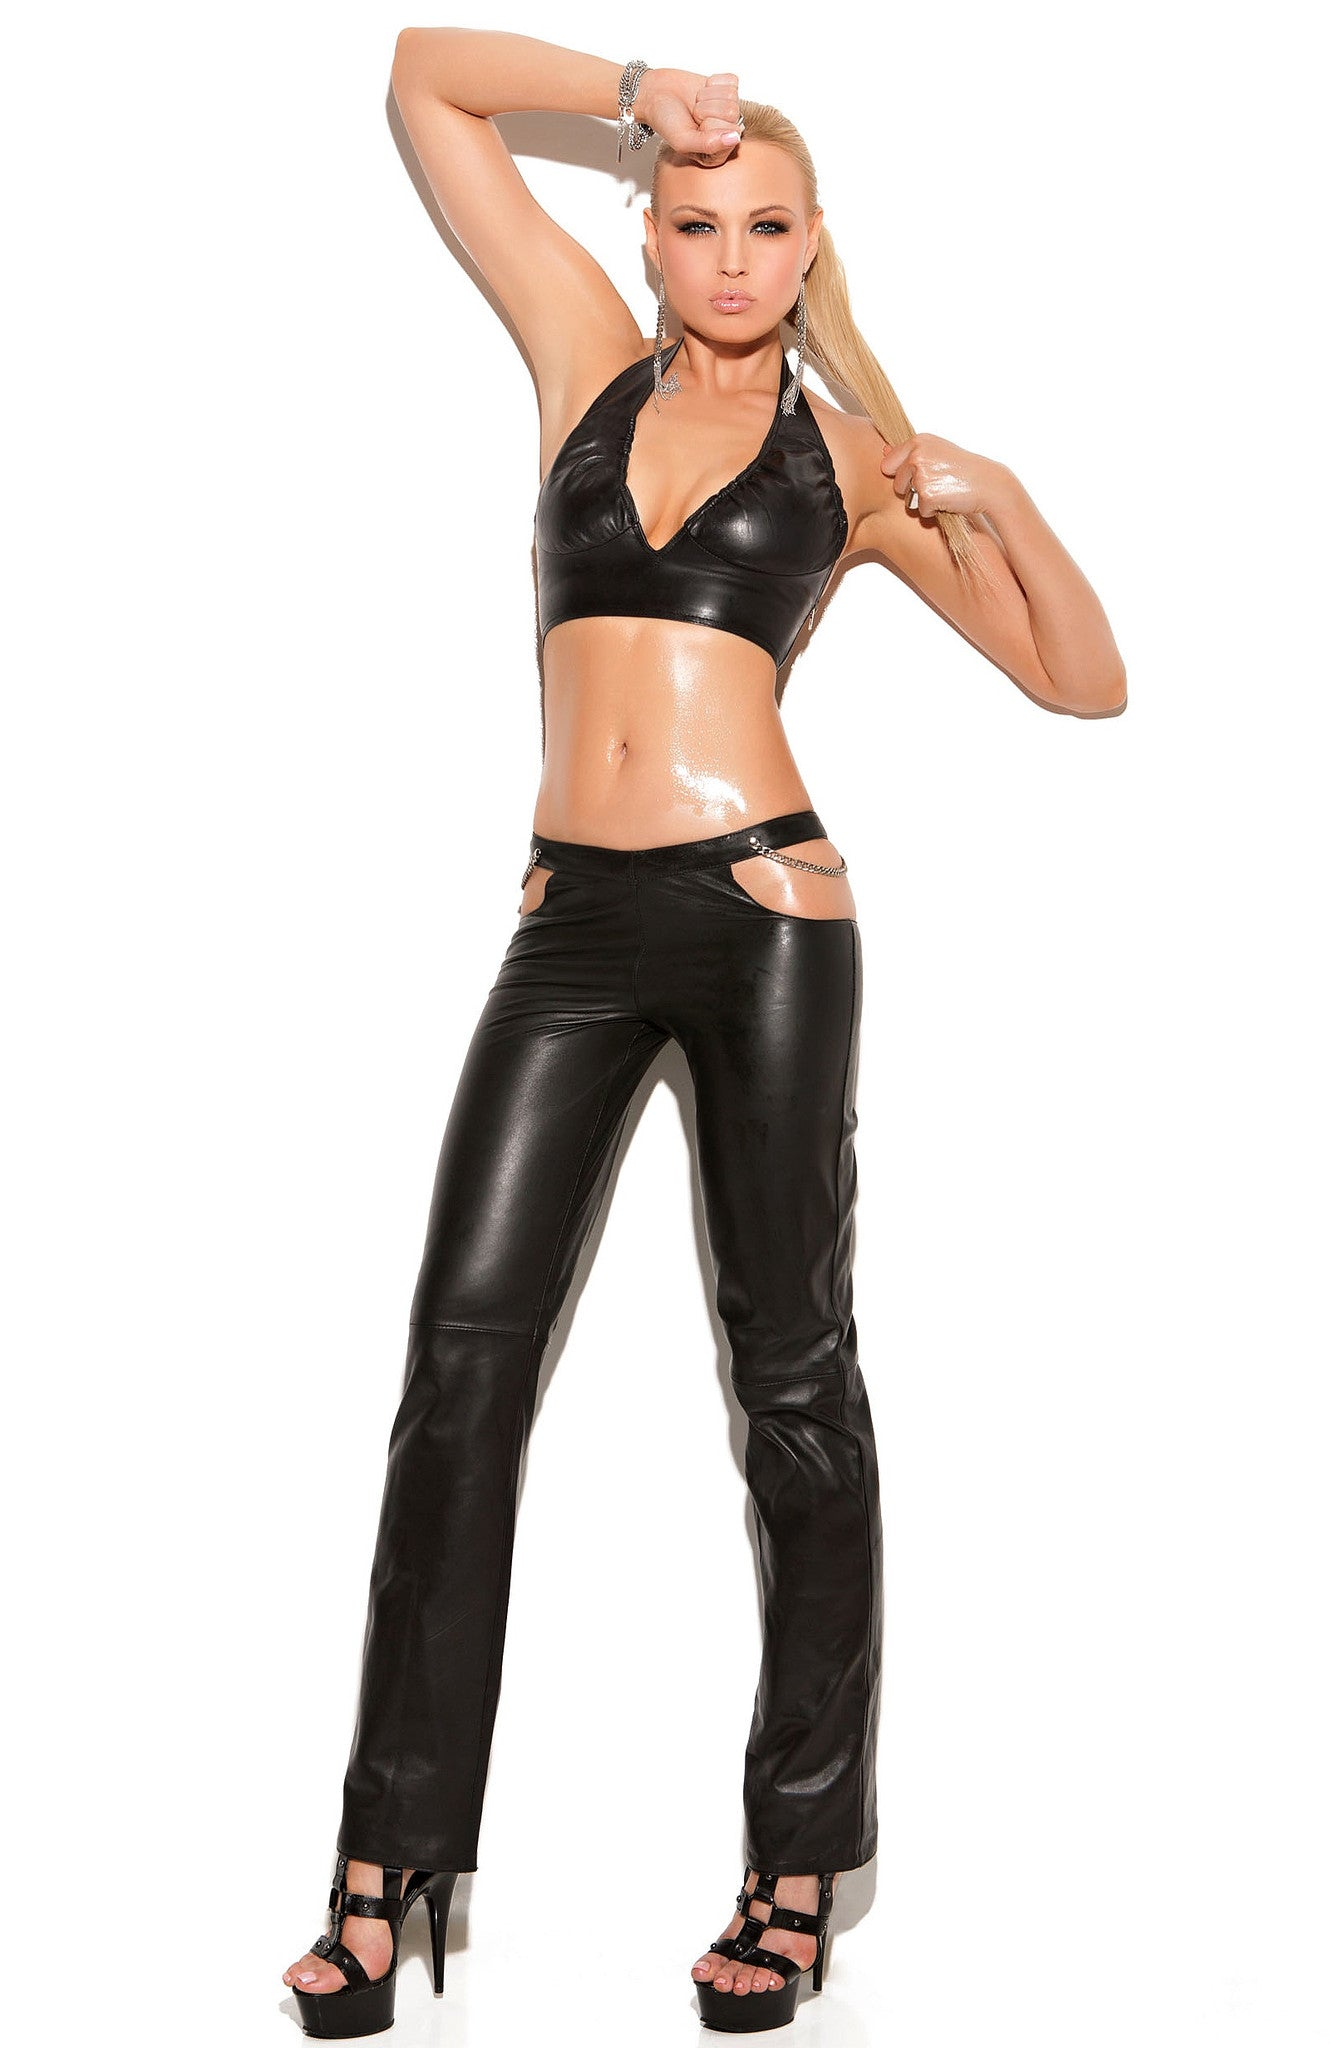 L4133 Leather top - Sexylingerieland  - 1